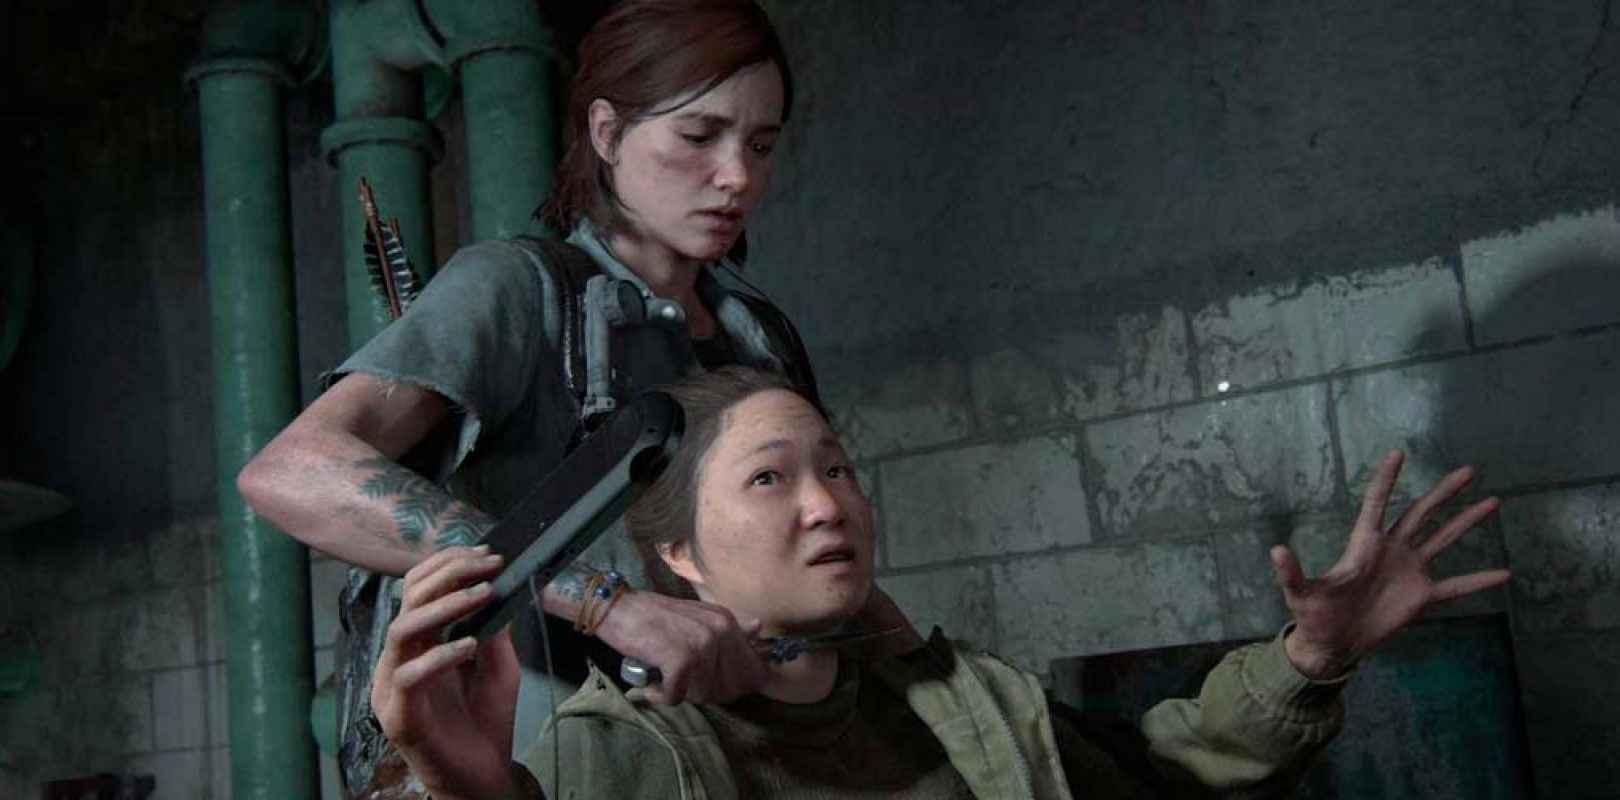 the last of us part ii 1620x800 - Quando un videogioco diventa realtà: The Last of Us Parte II (Prima parte)